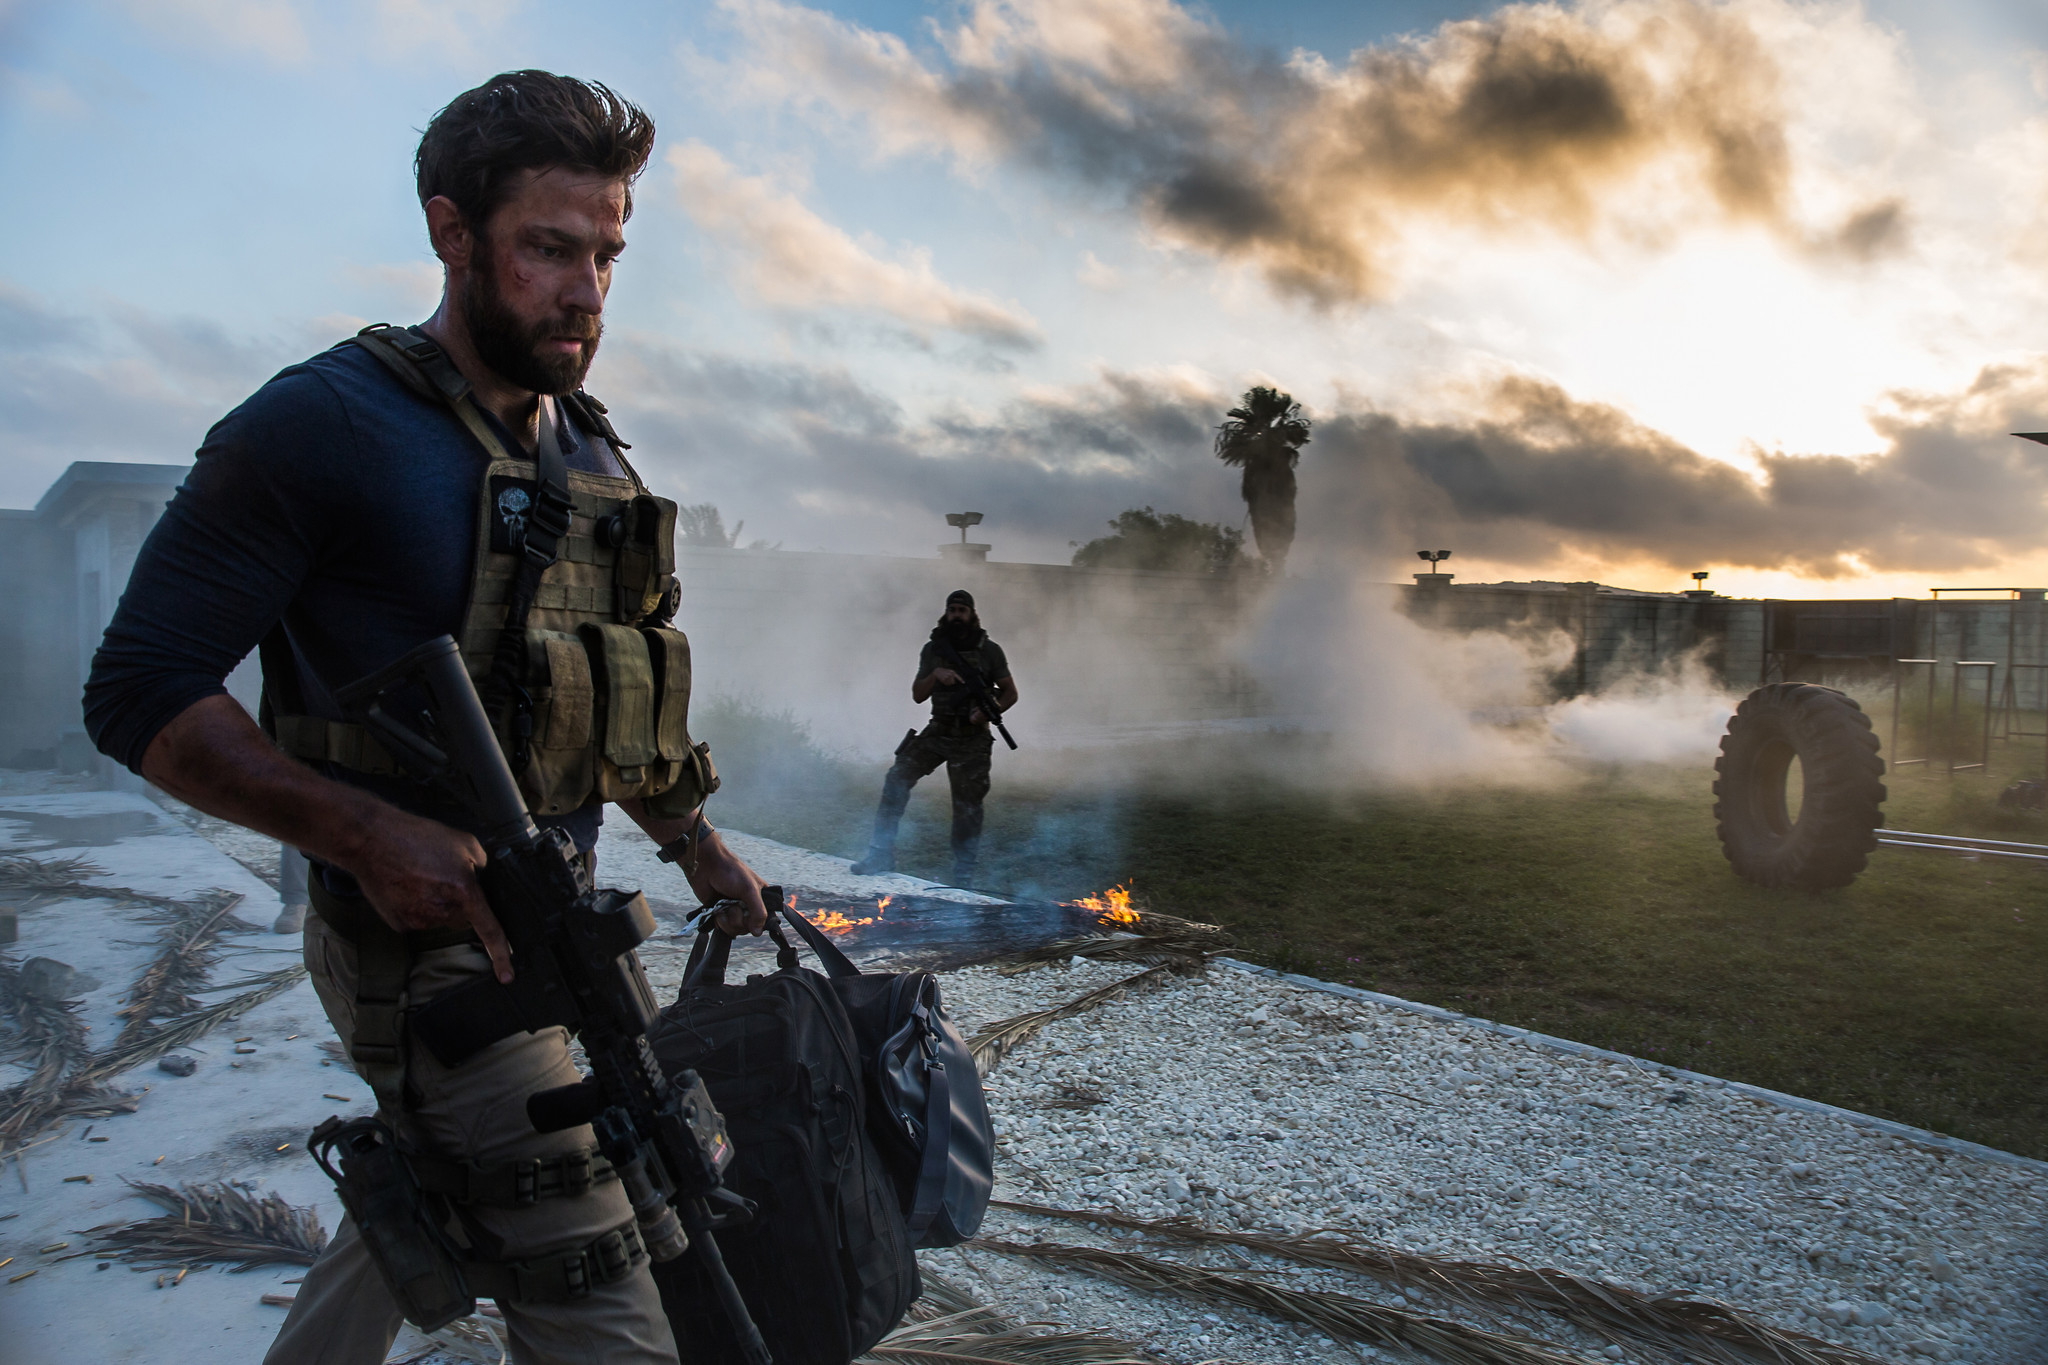 benghazi bay Film Review: 13 Hours: The Secret Soldiers of Benghazi